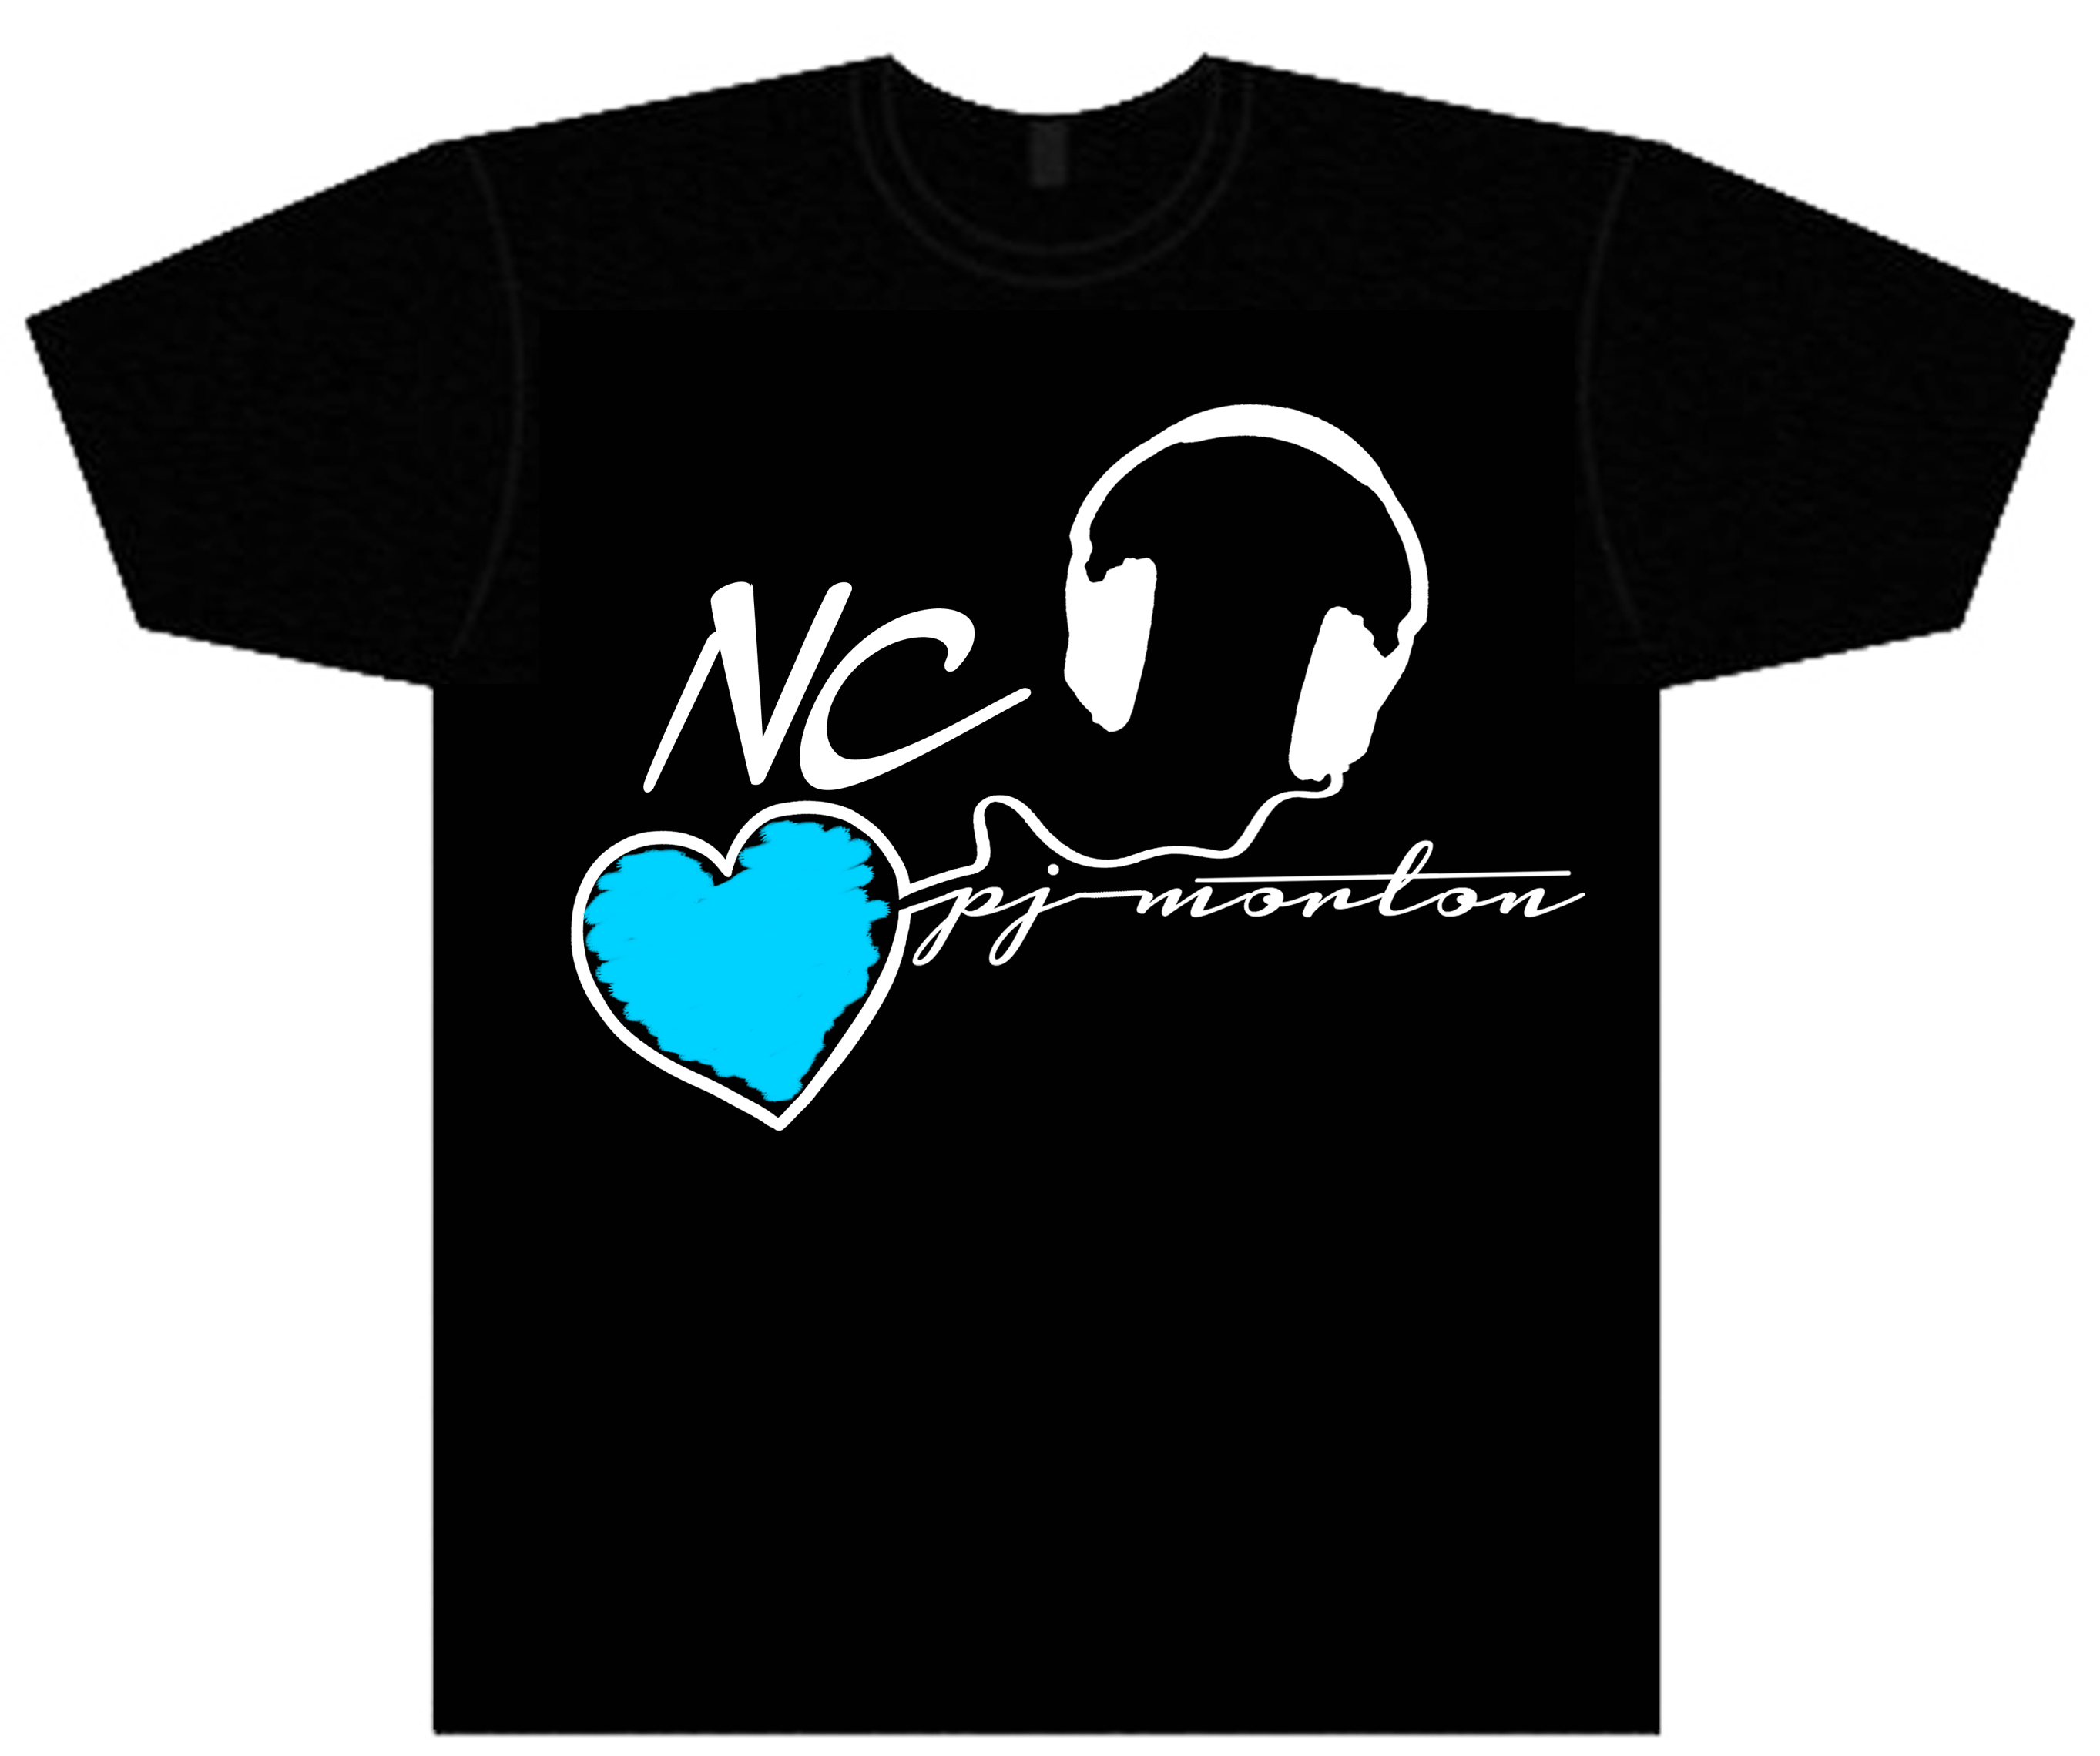 Pj Morton Nc Street Team T Shirt Design Move Design Group